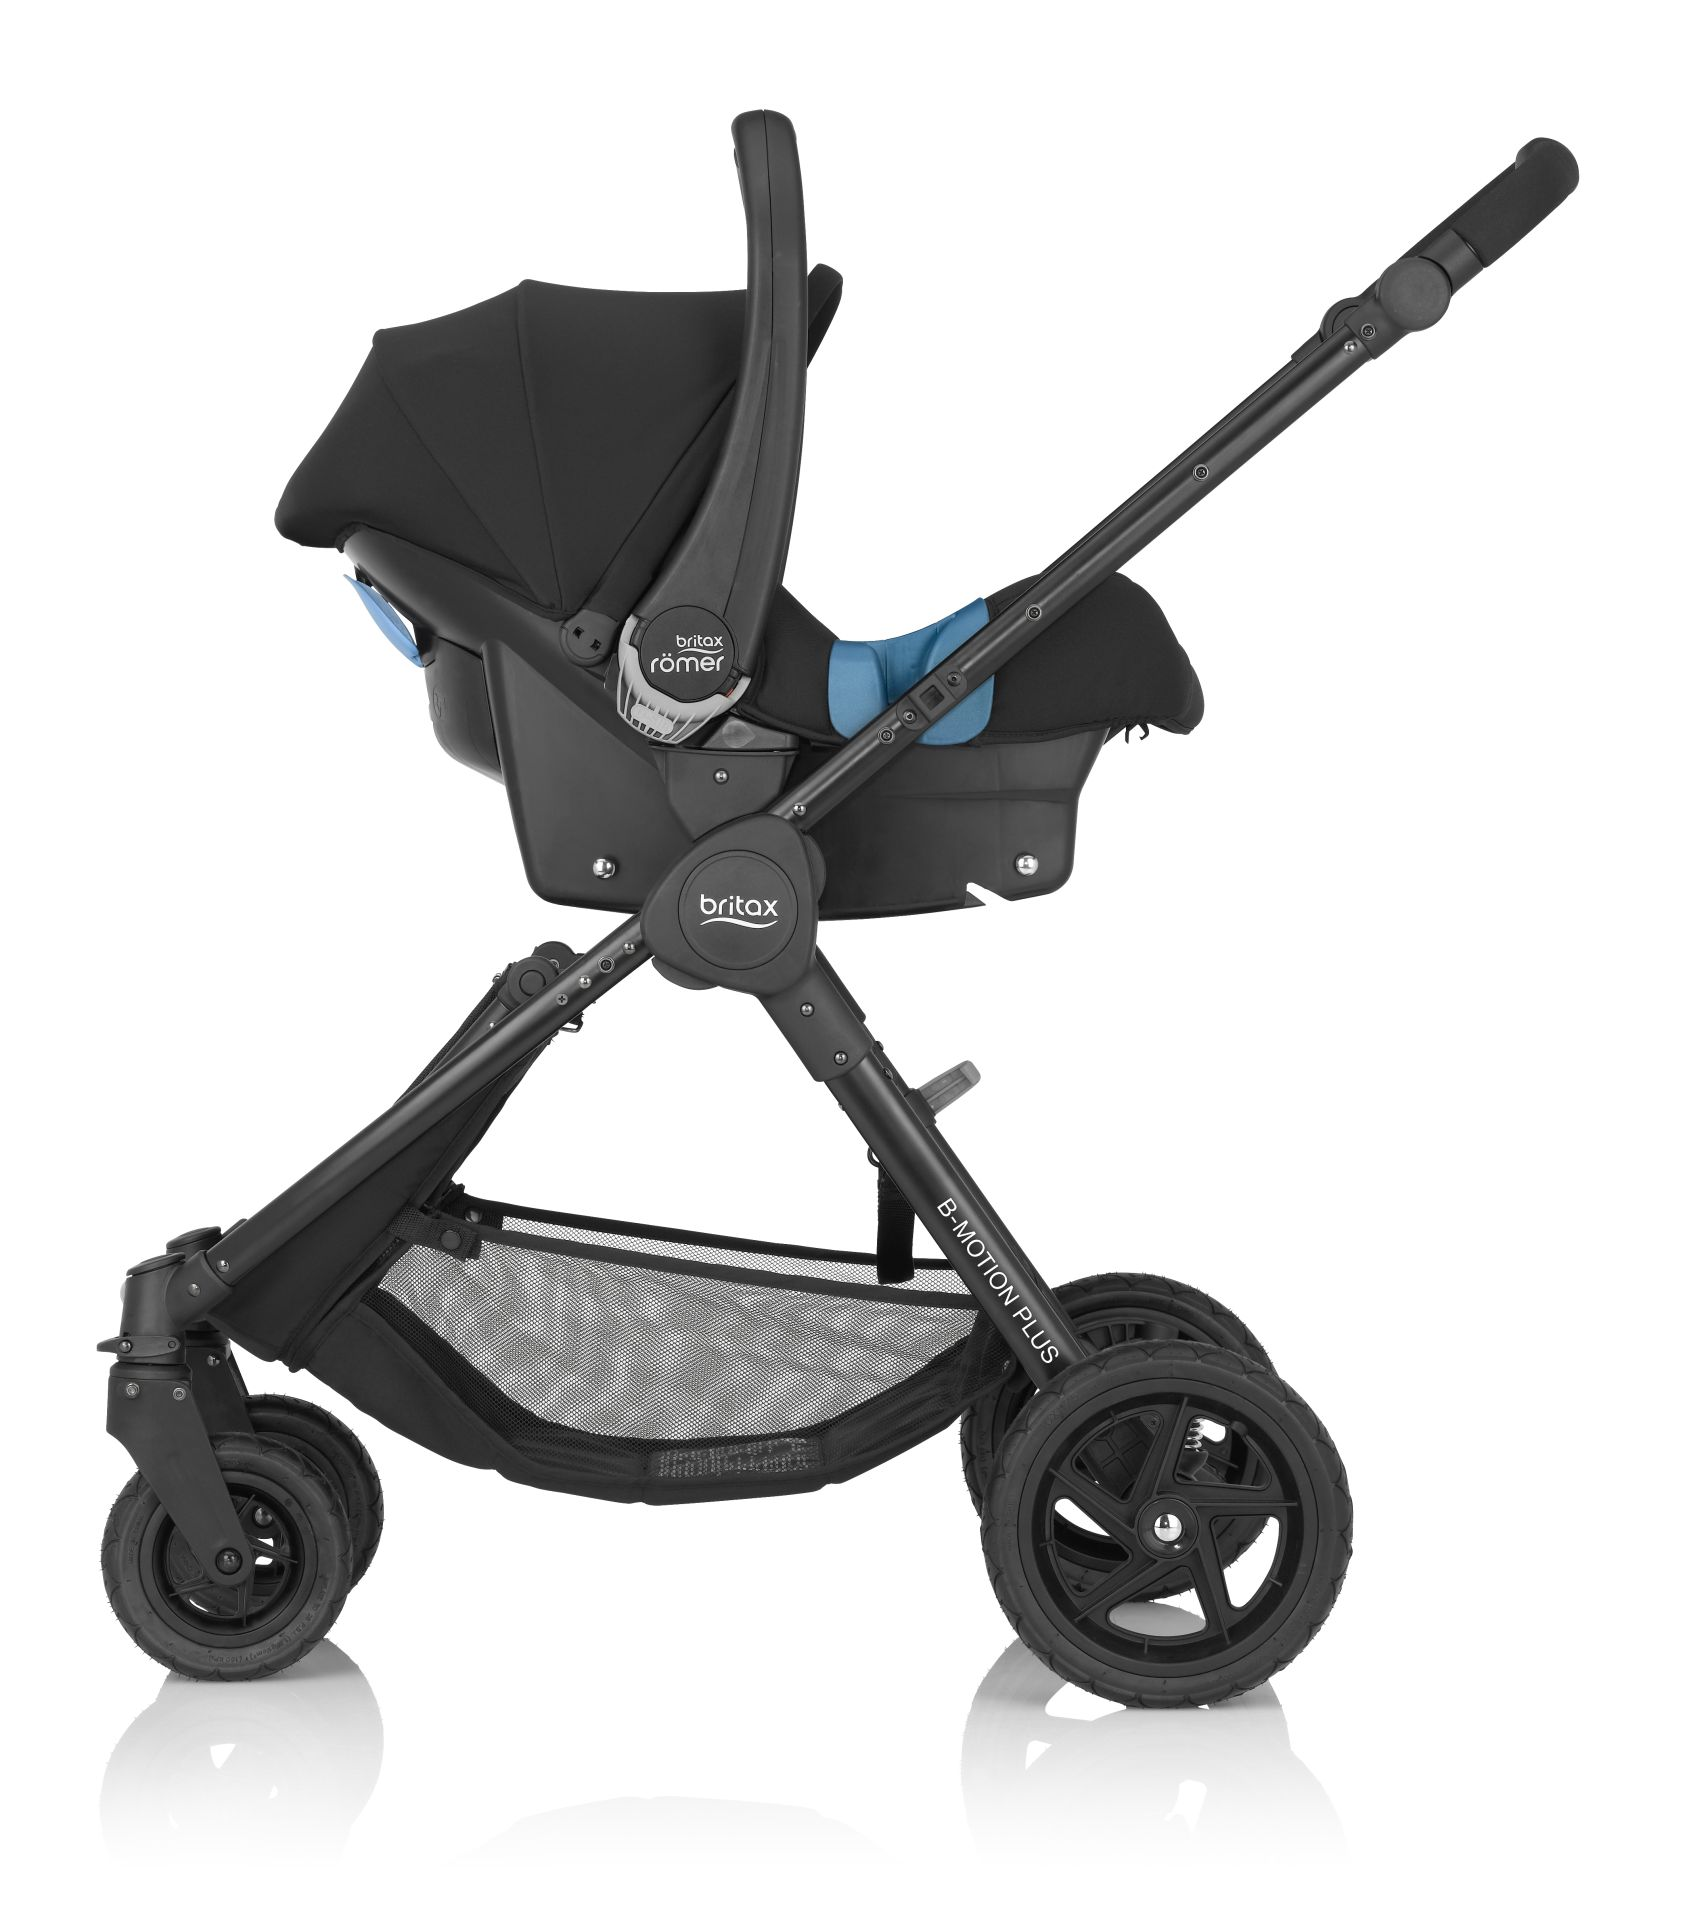 ... Britax B-Motion 4 Plus incl. Canopy Pack + Carrycot Attachment + infant carrier  sc 1 st  worldwide shipping | kidsroom & Britax B-Motion 4 Plus incl. Canopy Pack + Carrycot Attachment + ...